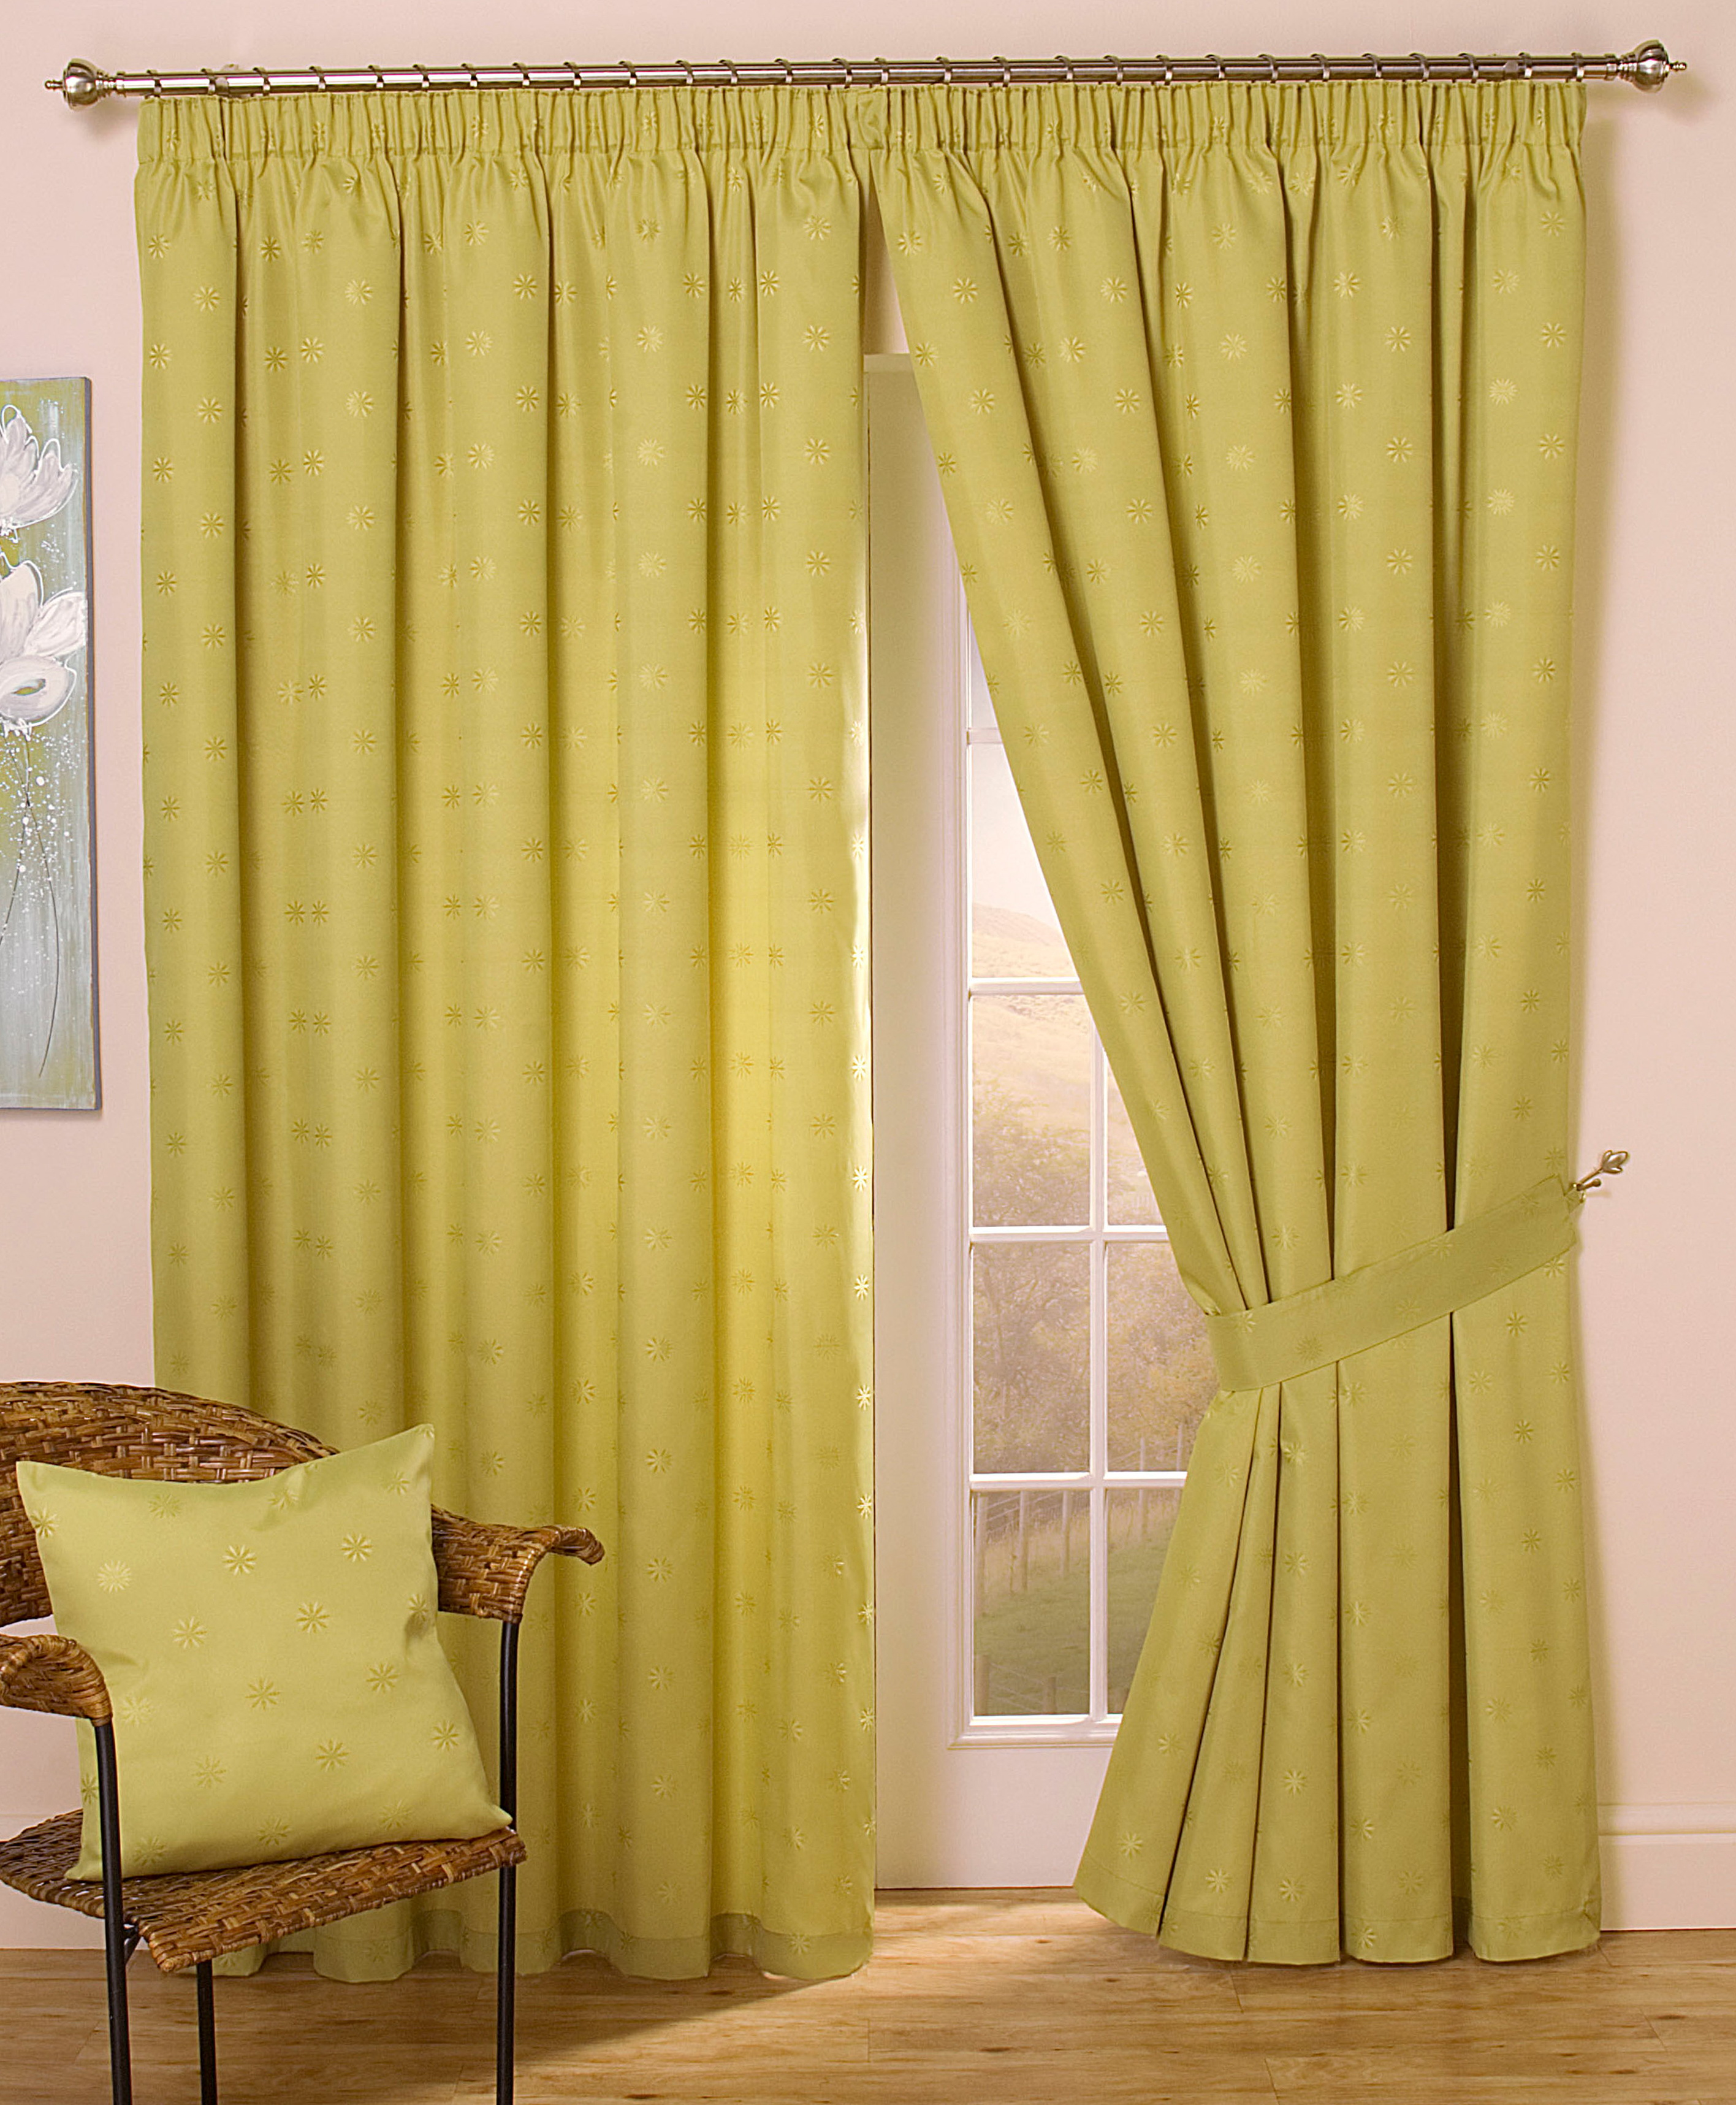 Cheap Curtains For Sale In Durban